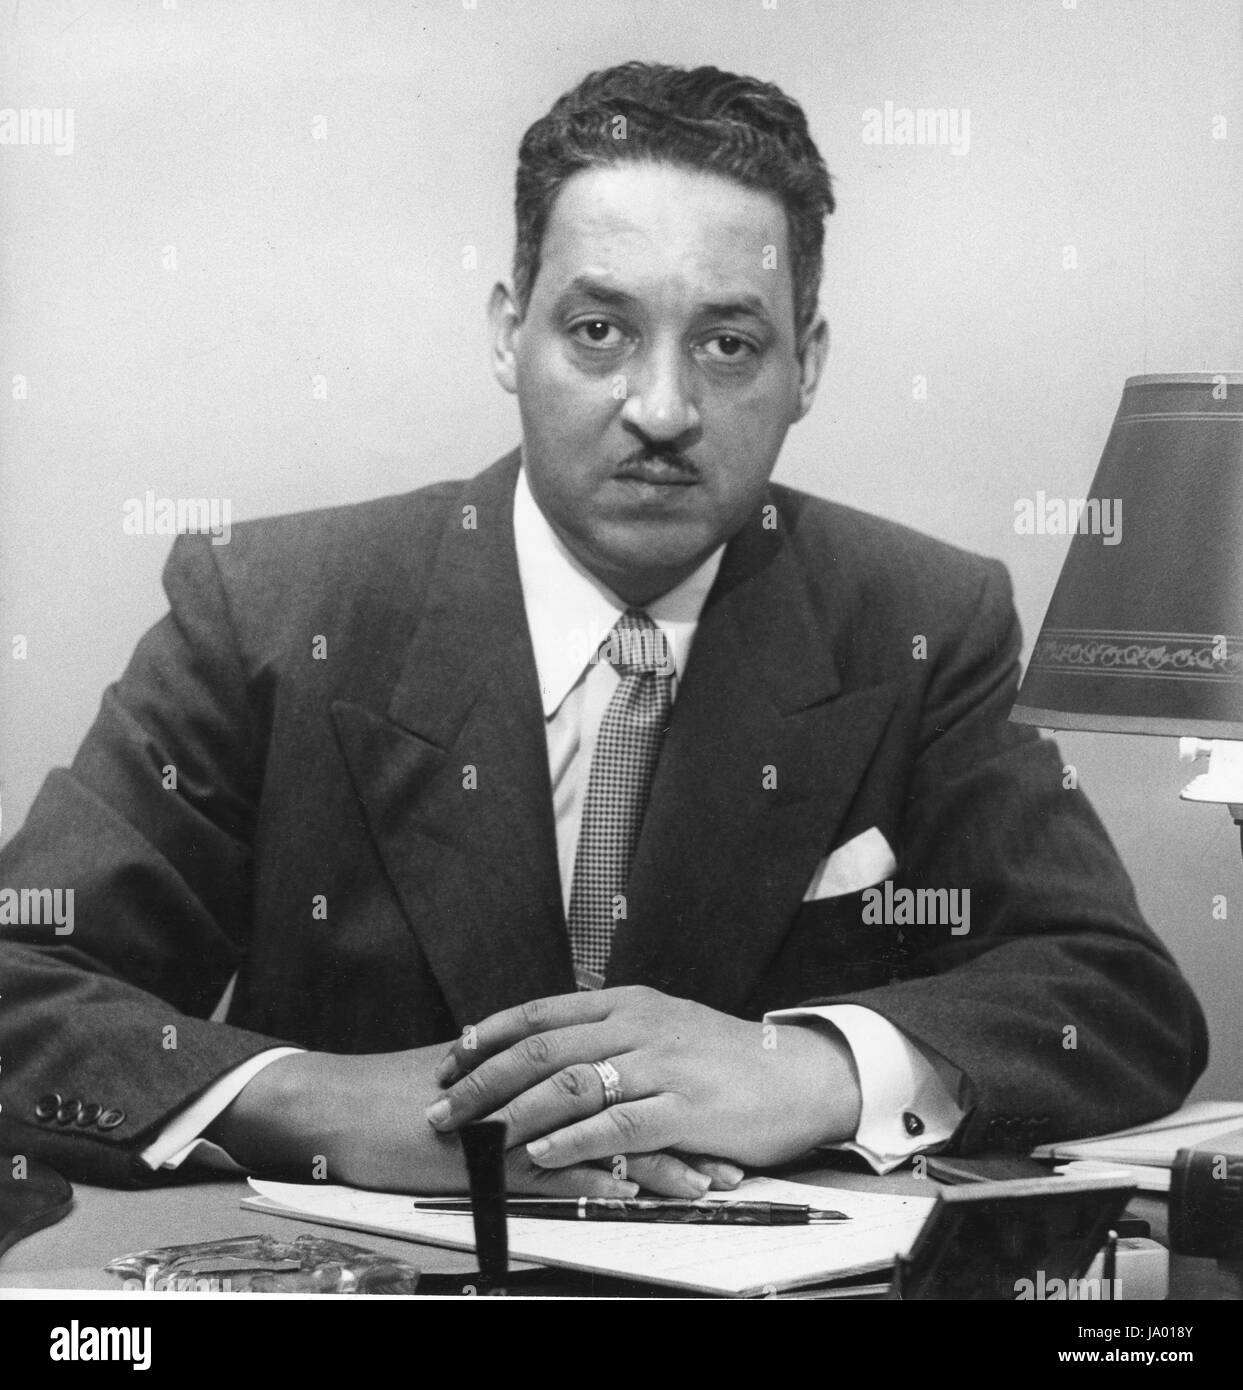 Thurgood Marshall, special counsel of the National Association for the Advancement of Colored People, New York, - Stock Image